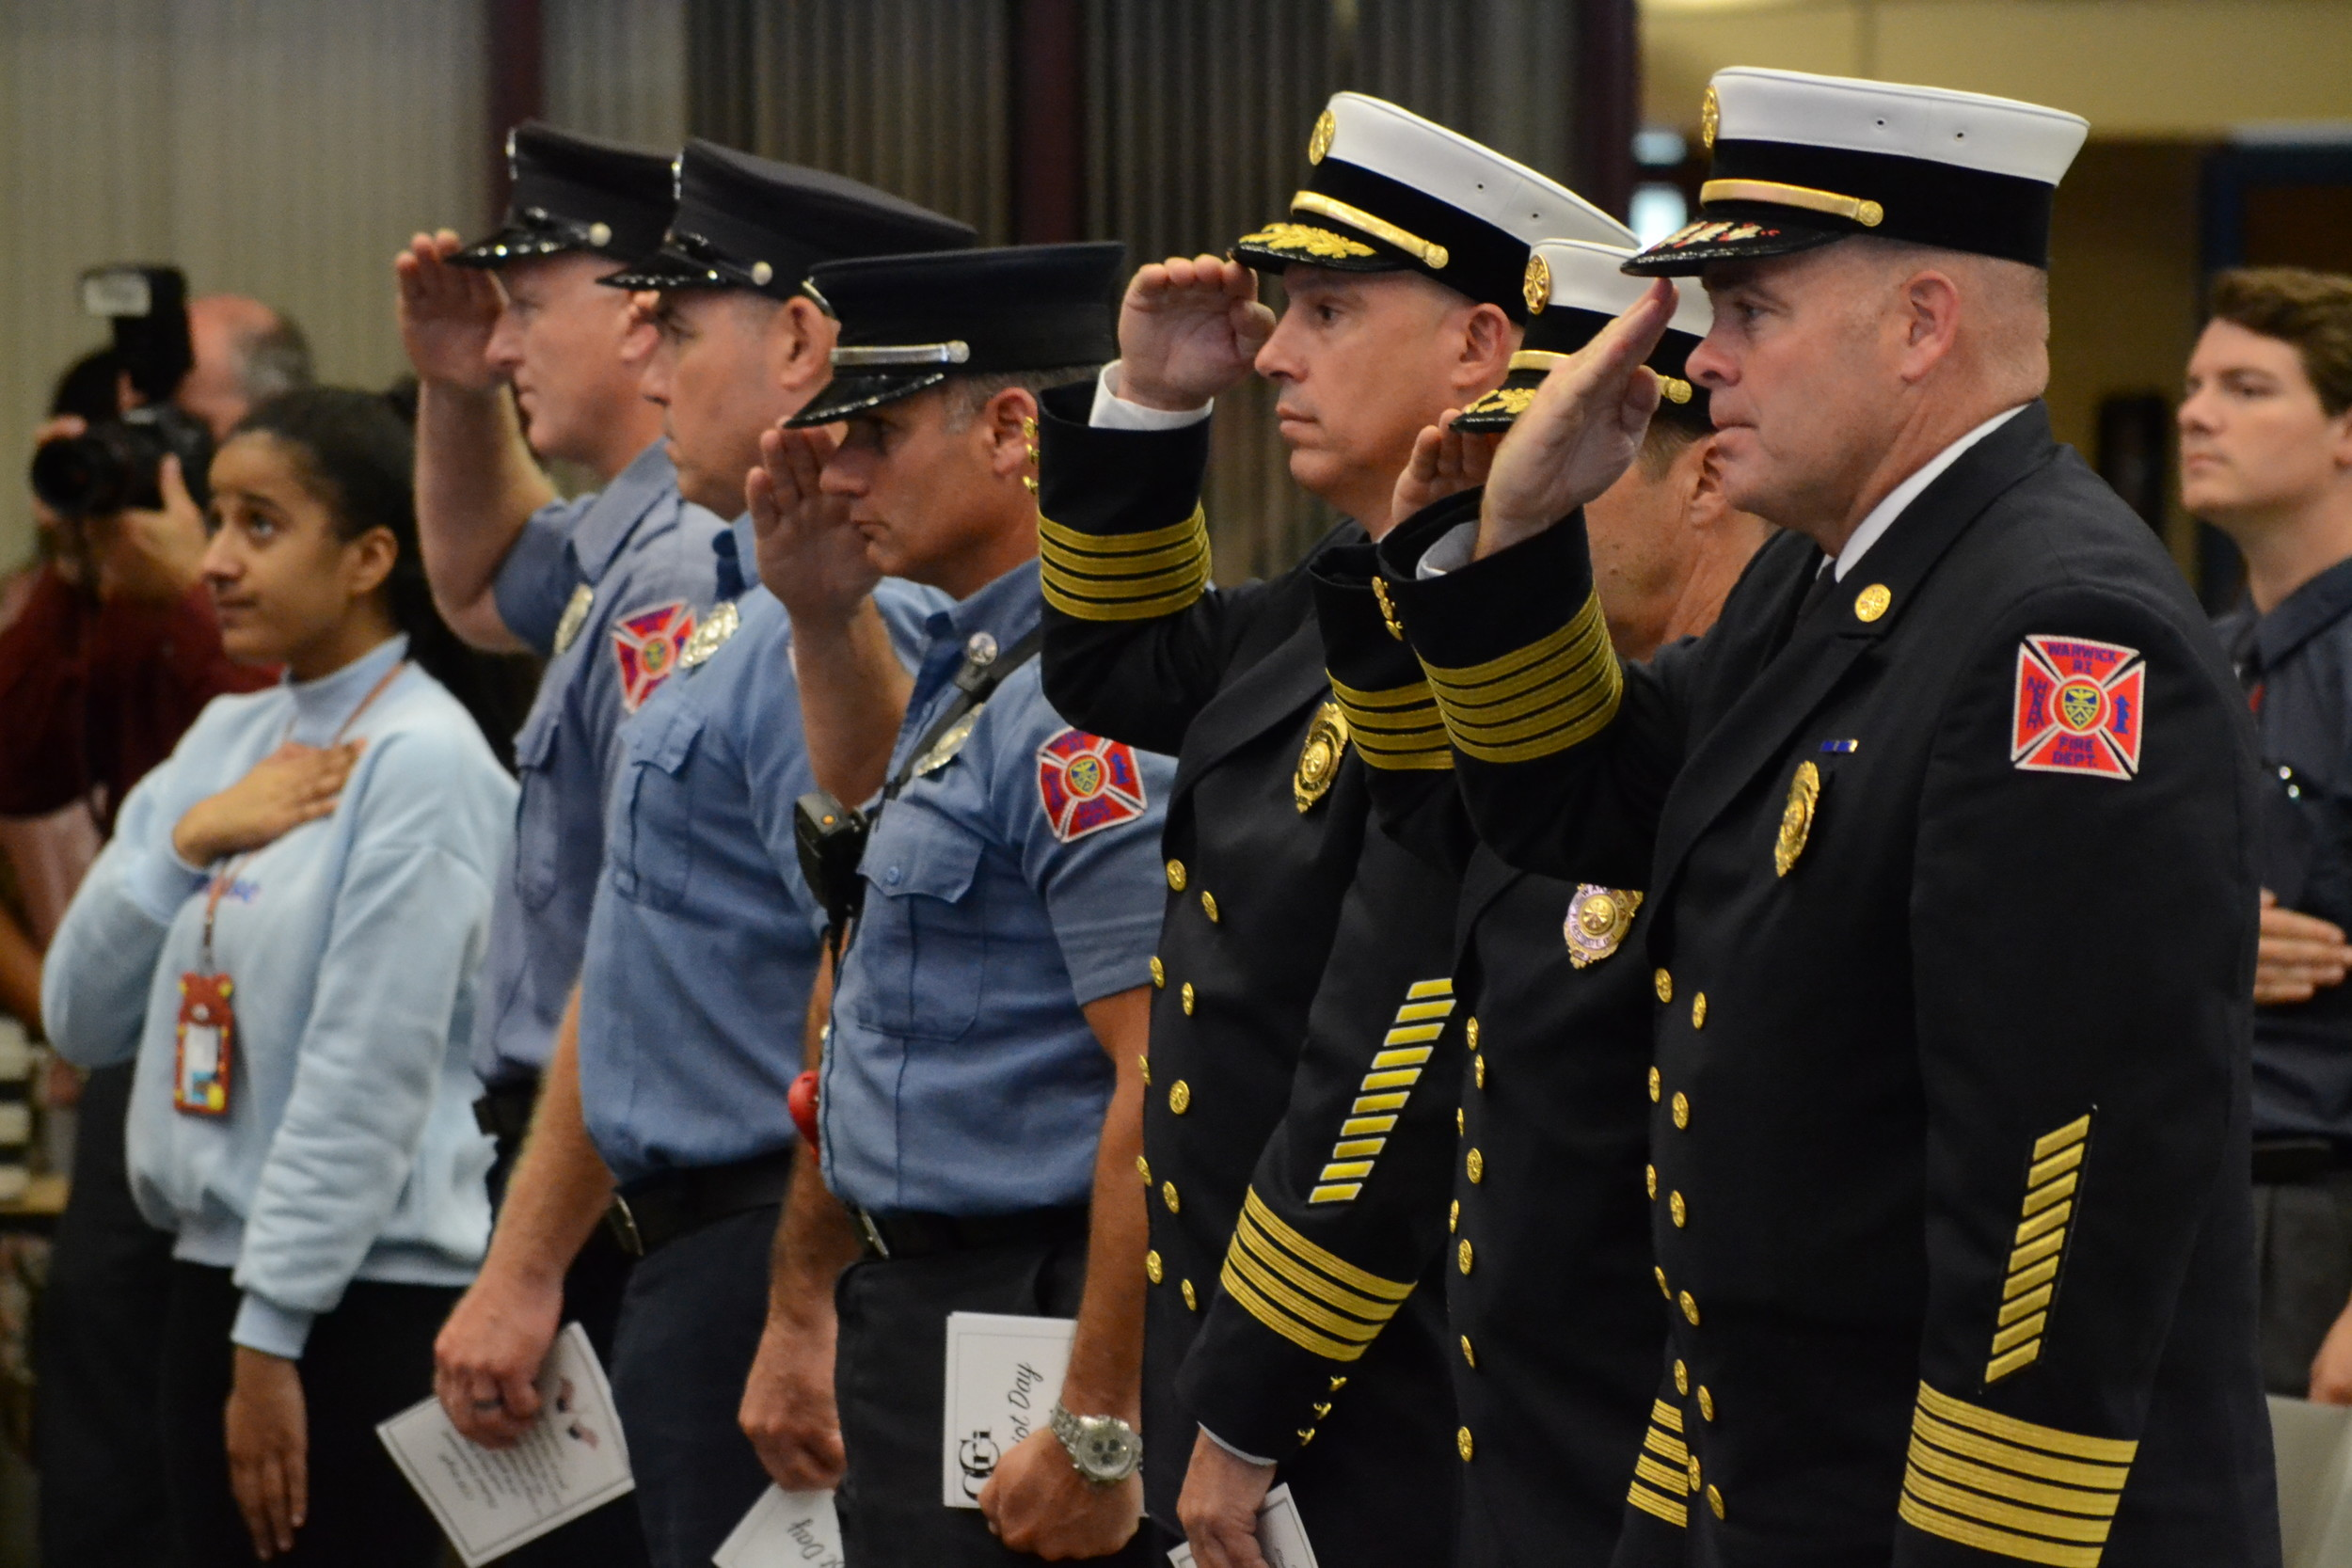 Members of the Warwick Fire Department salute during a bell ringing tribute at the CCRI event.